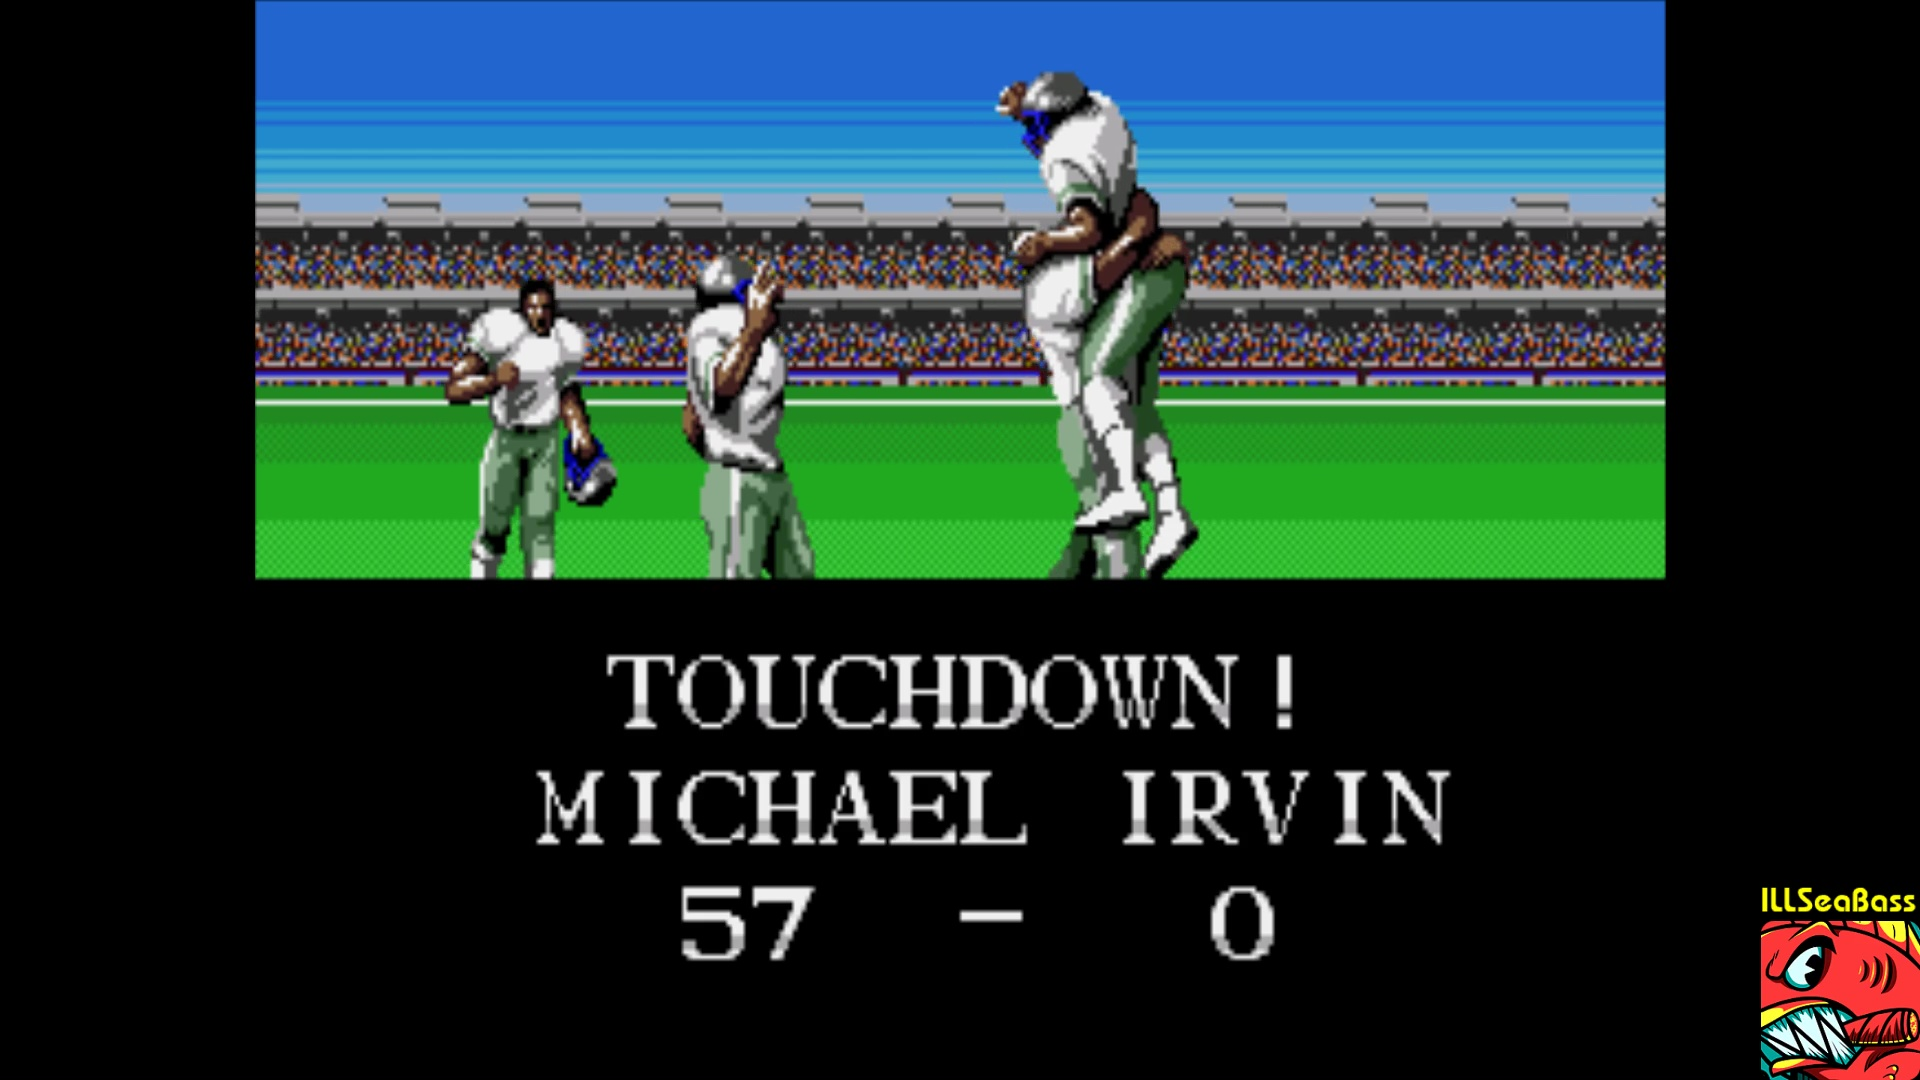 ILLSeaBass: Tecmo Super Bowl [Most Receiving Yards] [Preseason game] (Sega Genesis / MegaDrive Emulated) 457 points on 2018-01-04 22:59:32